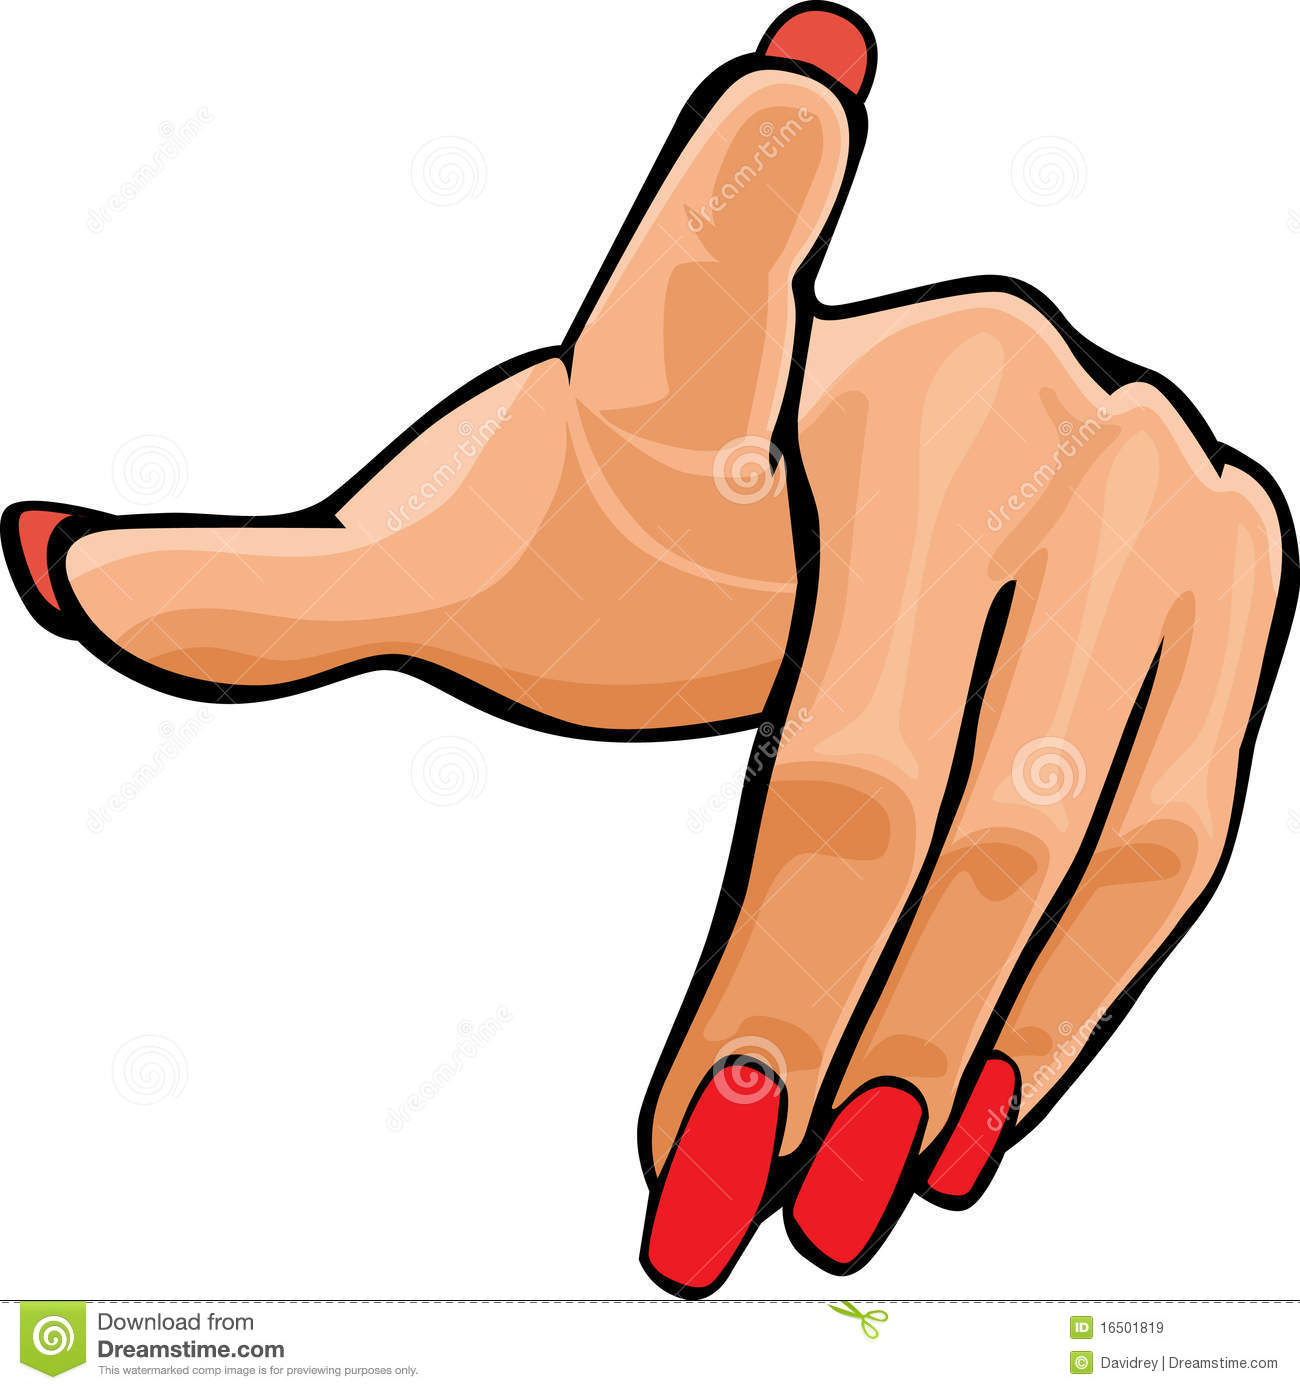 Woman Hand Clipart.